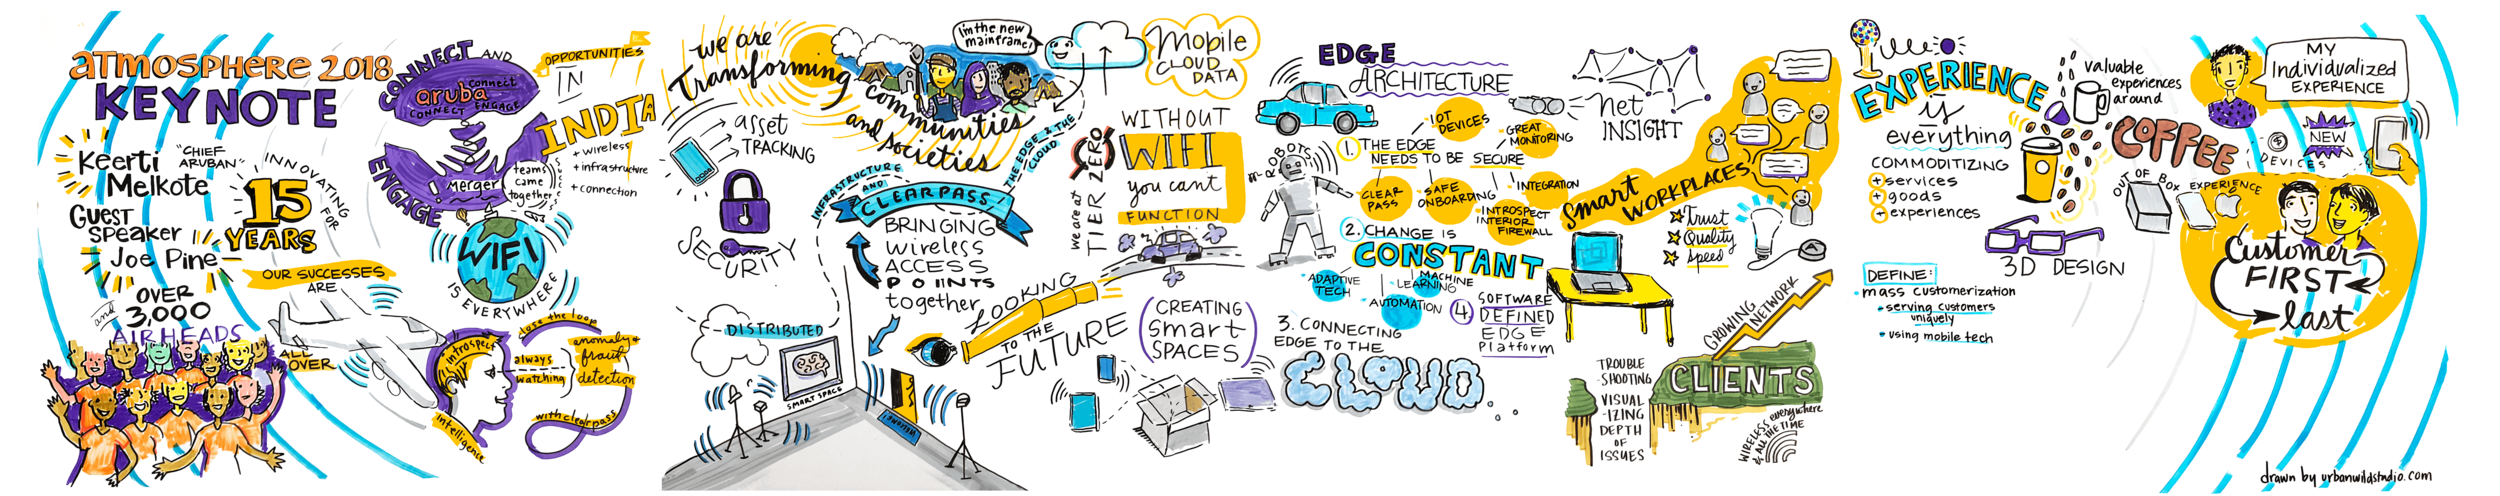 Copy of Aruba Atmosphere 2018 Keynote Graphic Recording Visual Notes